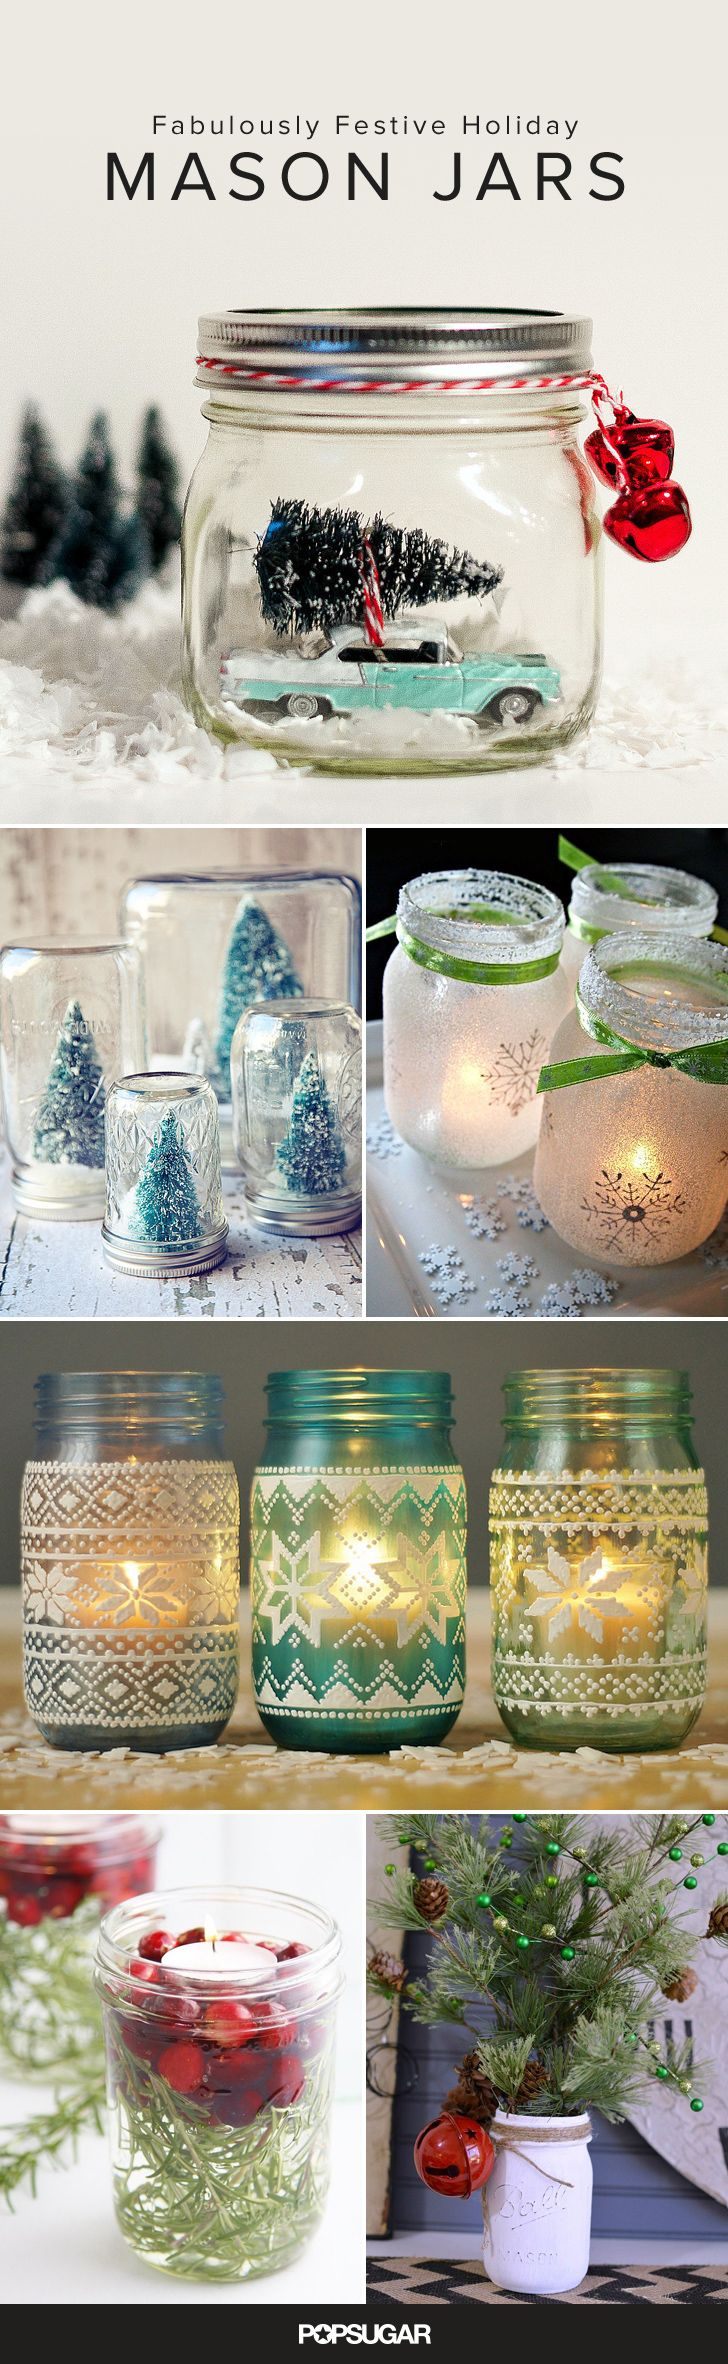 Mason jars have been popping out of canning cupboards and appearing in more…